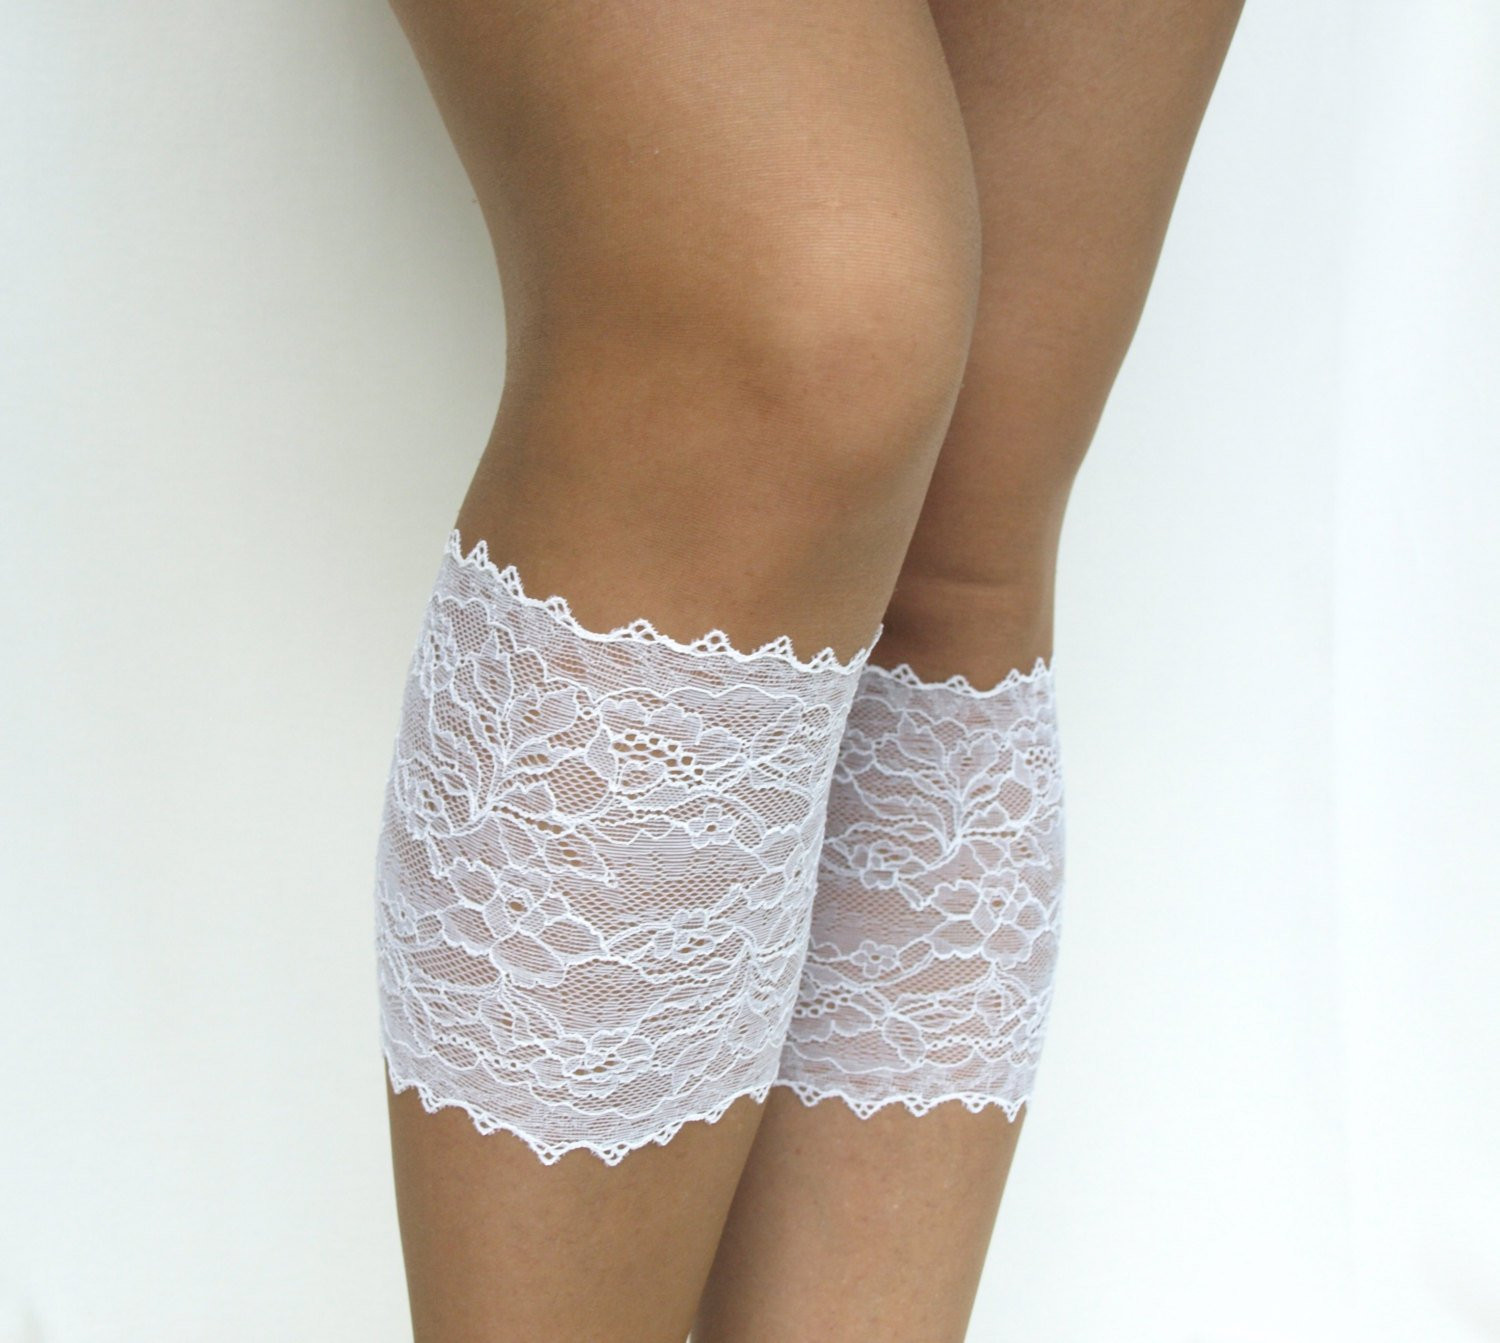 New Lace Boot Cuff socks White Stretch Lace Boot topper Lace Boot Cuffs Of Awesome 50 Pictures Lace Boot Cuffs